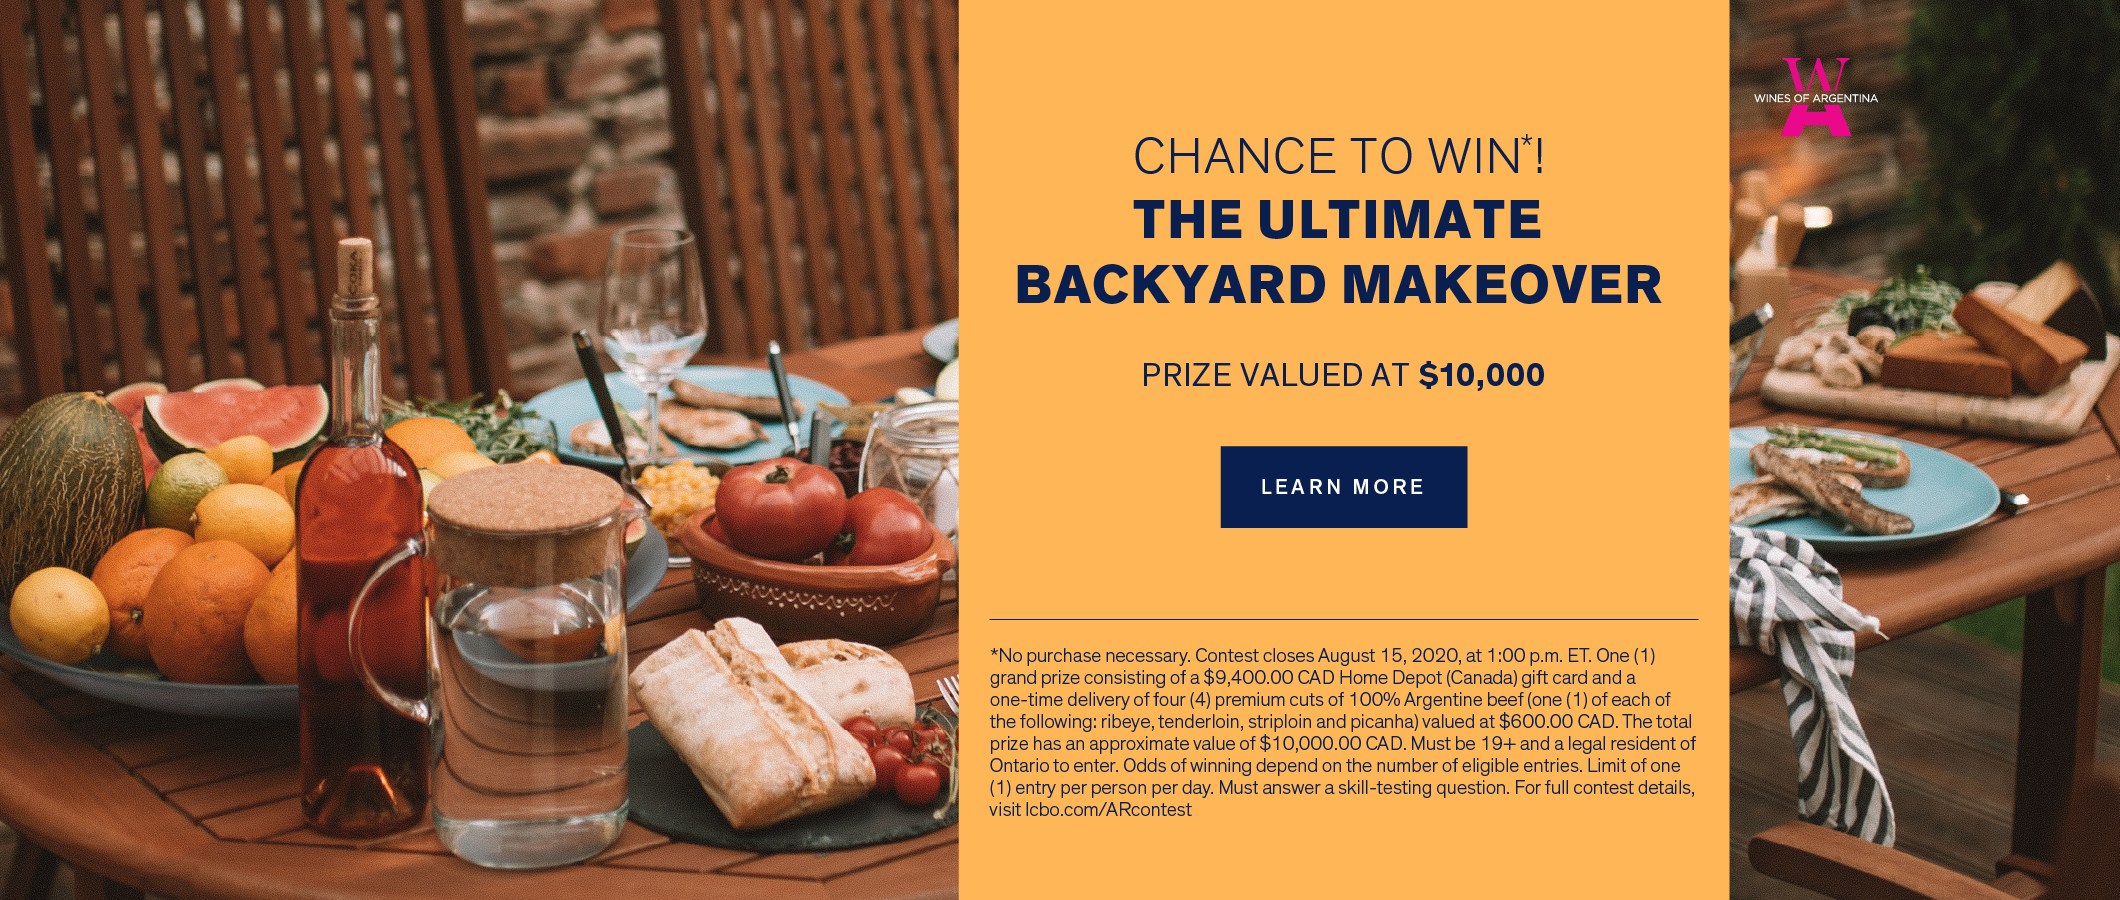 The Ultimate Backyard Makeover!